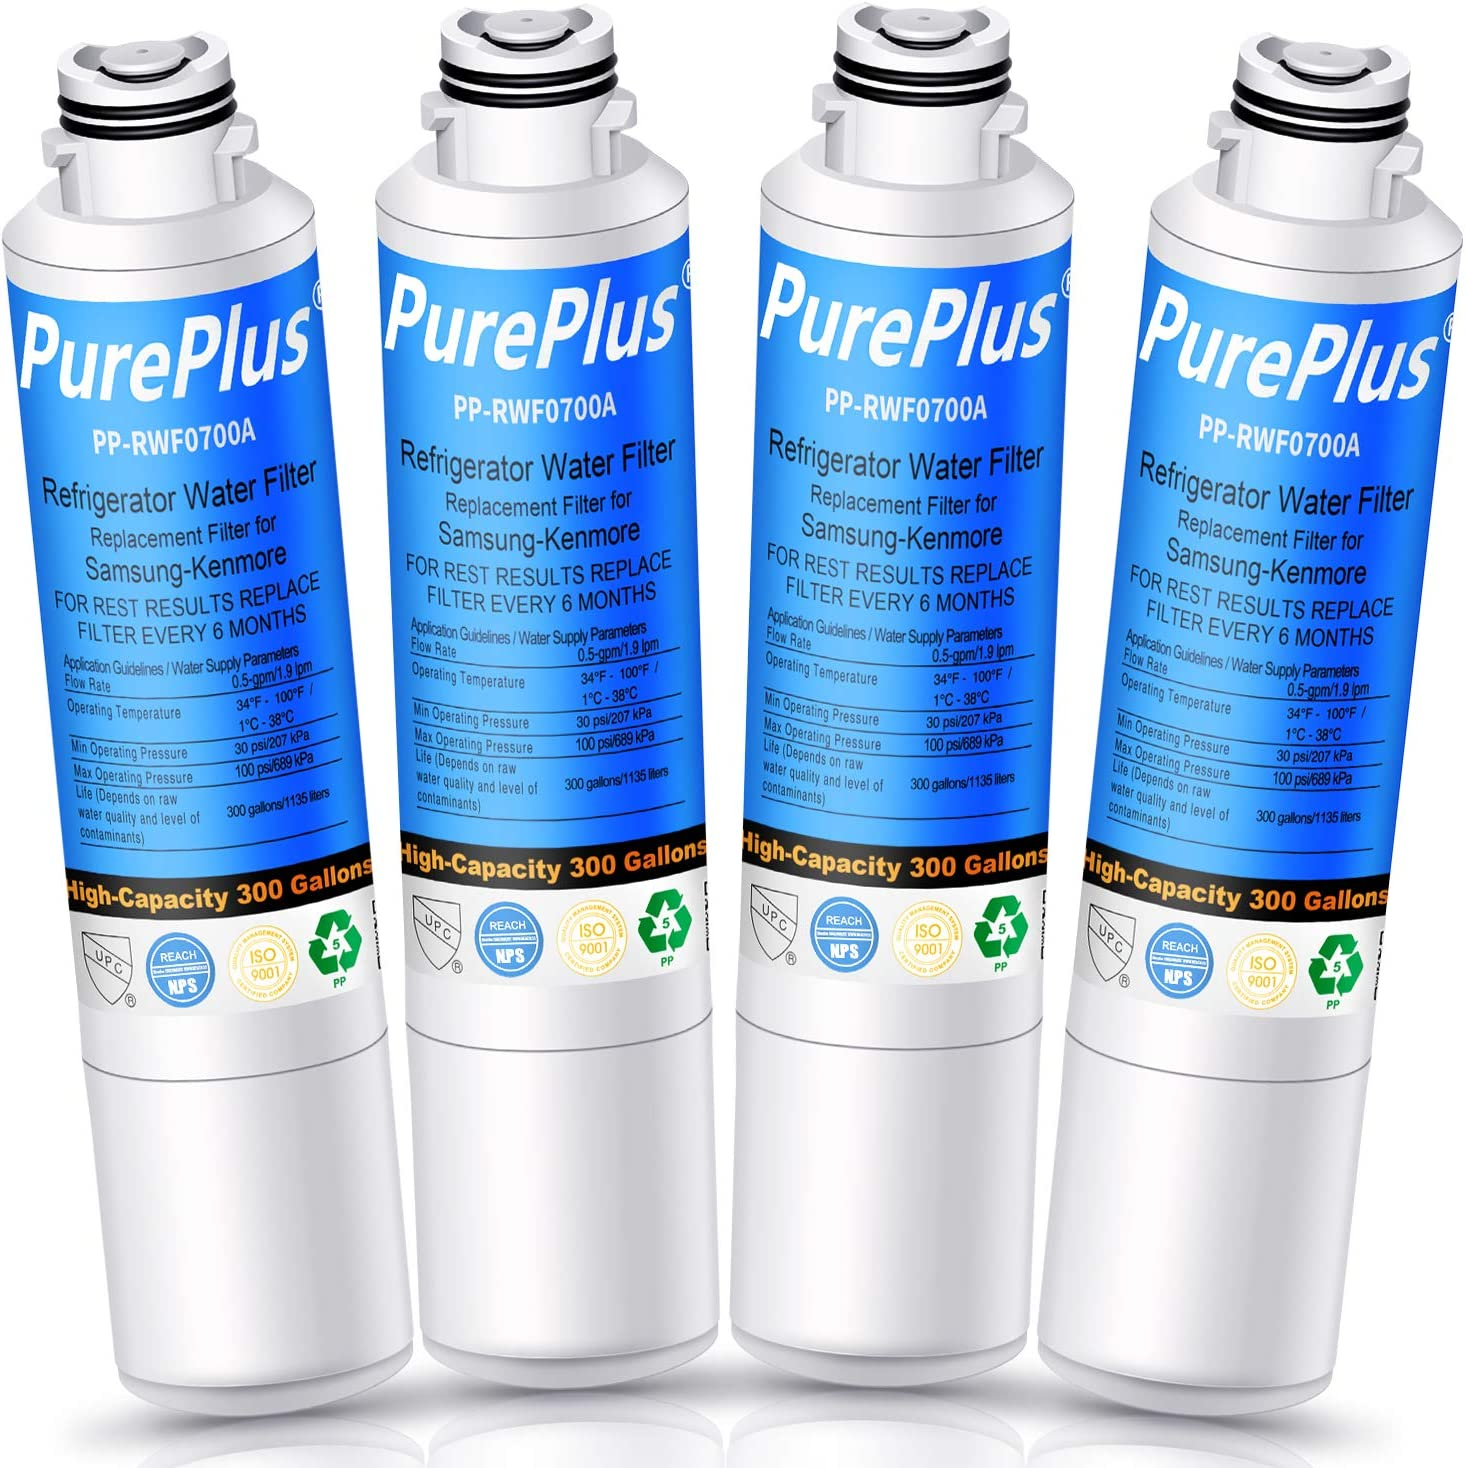 PUREPLUS DA29-00020B Refrigerator Water Filter, Replacement for Samsung DA29-00020A/B, HAF-CIN, HAF-CIN/EXP, DA97-08006A, 9101, HDX FMS-2, RF28HMEDBSR, RF4287HARS, RF263TEAESG, RH22H9010SR (Pack of 4)